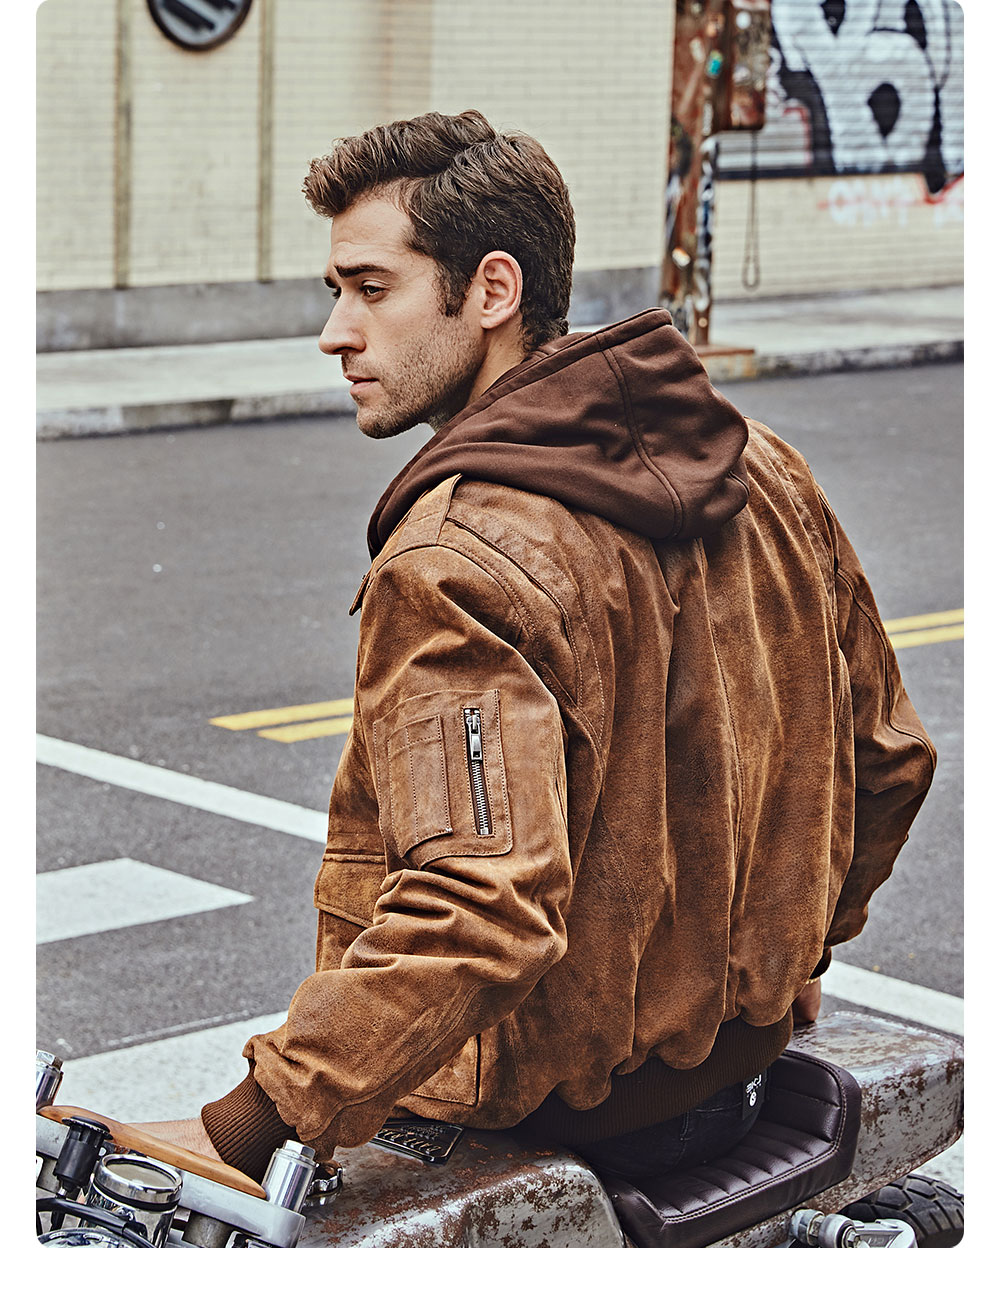 He128d3a4d51b44f5adda2407cd825750R FLAVOR New Men's Genuine Leather Bomber Jackets Removable Hood Men Air Forca Aviator winter coat Men Warm Real Leather Jacket